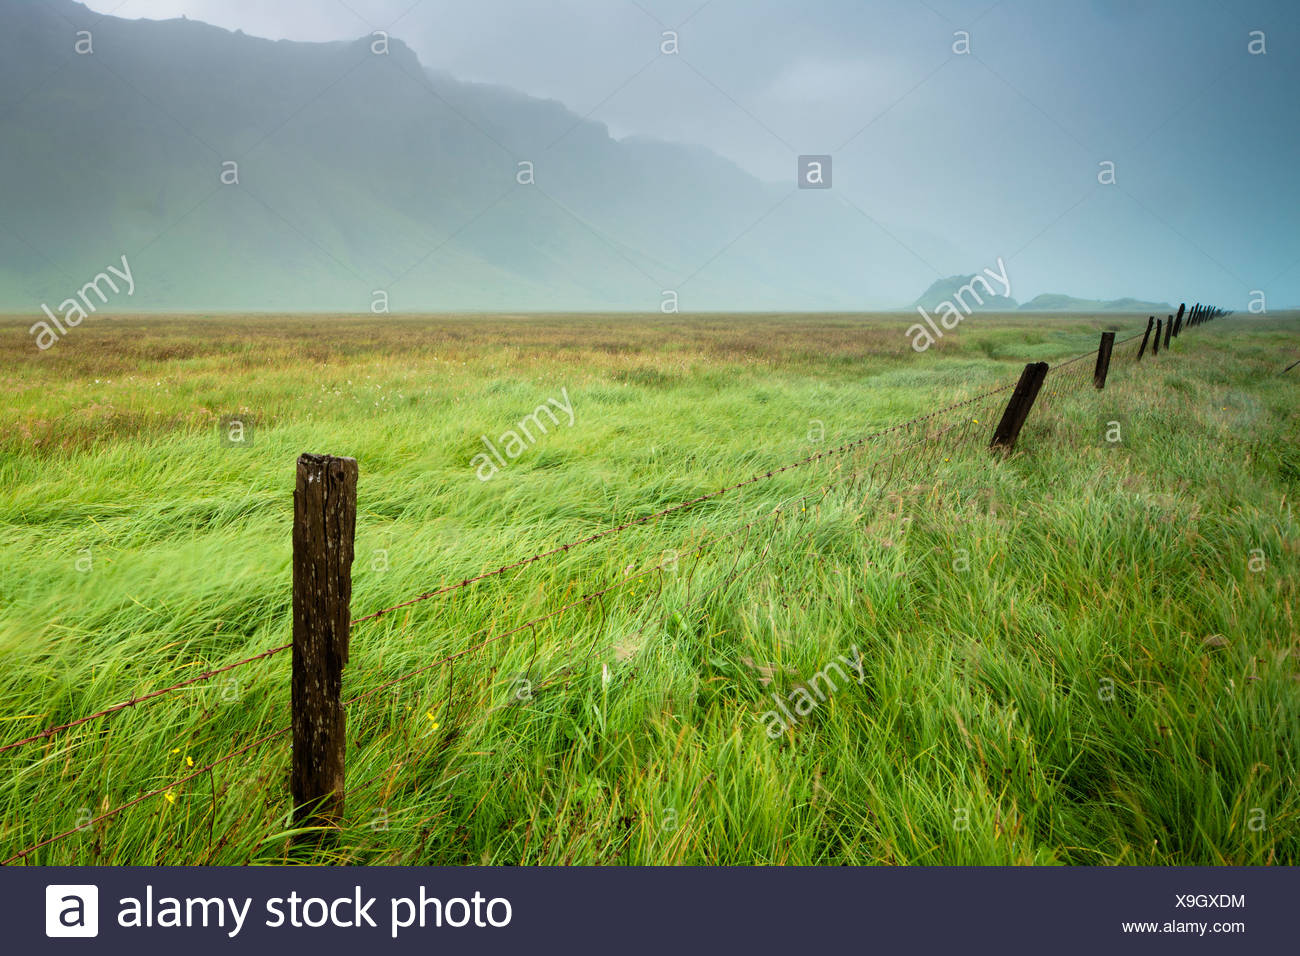 Fog Over A Field With Long Grass And Wooden Fence Posts With The Mountains In The Background; Iceland - Stock Image